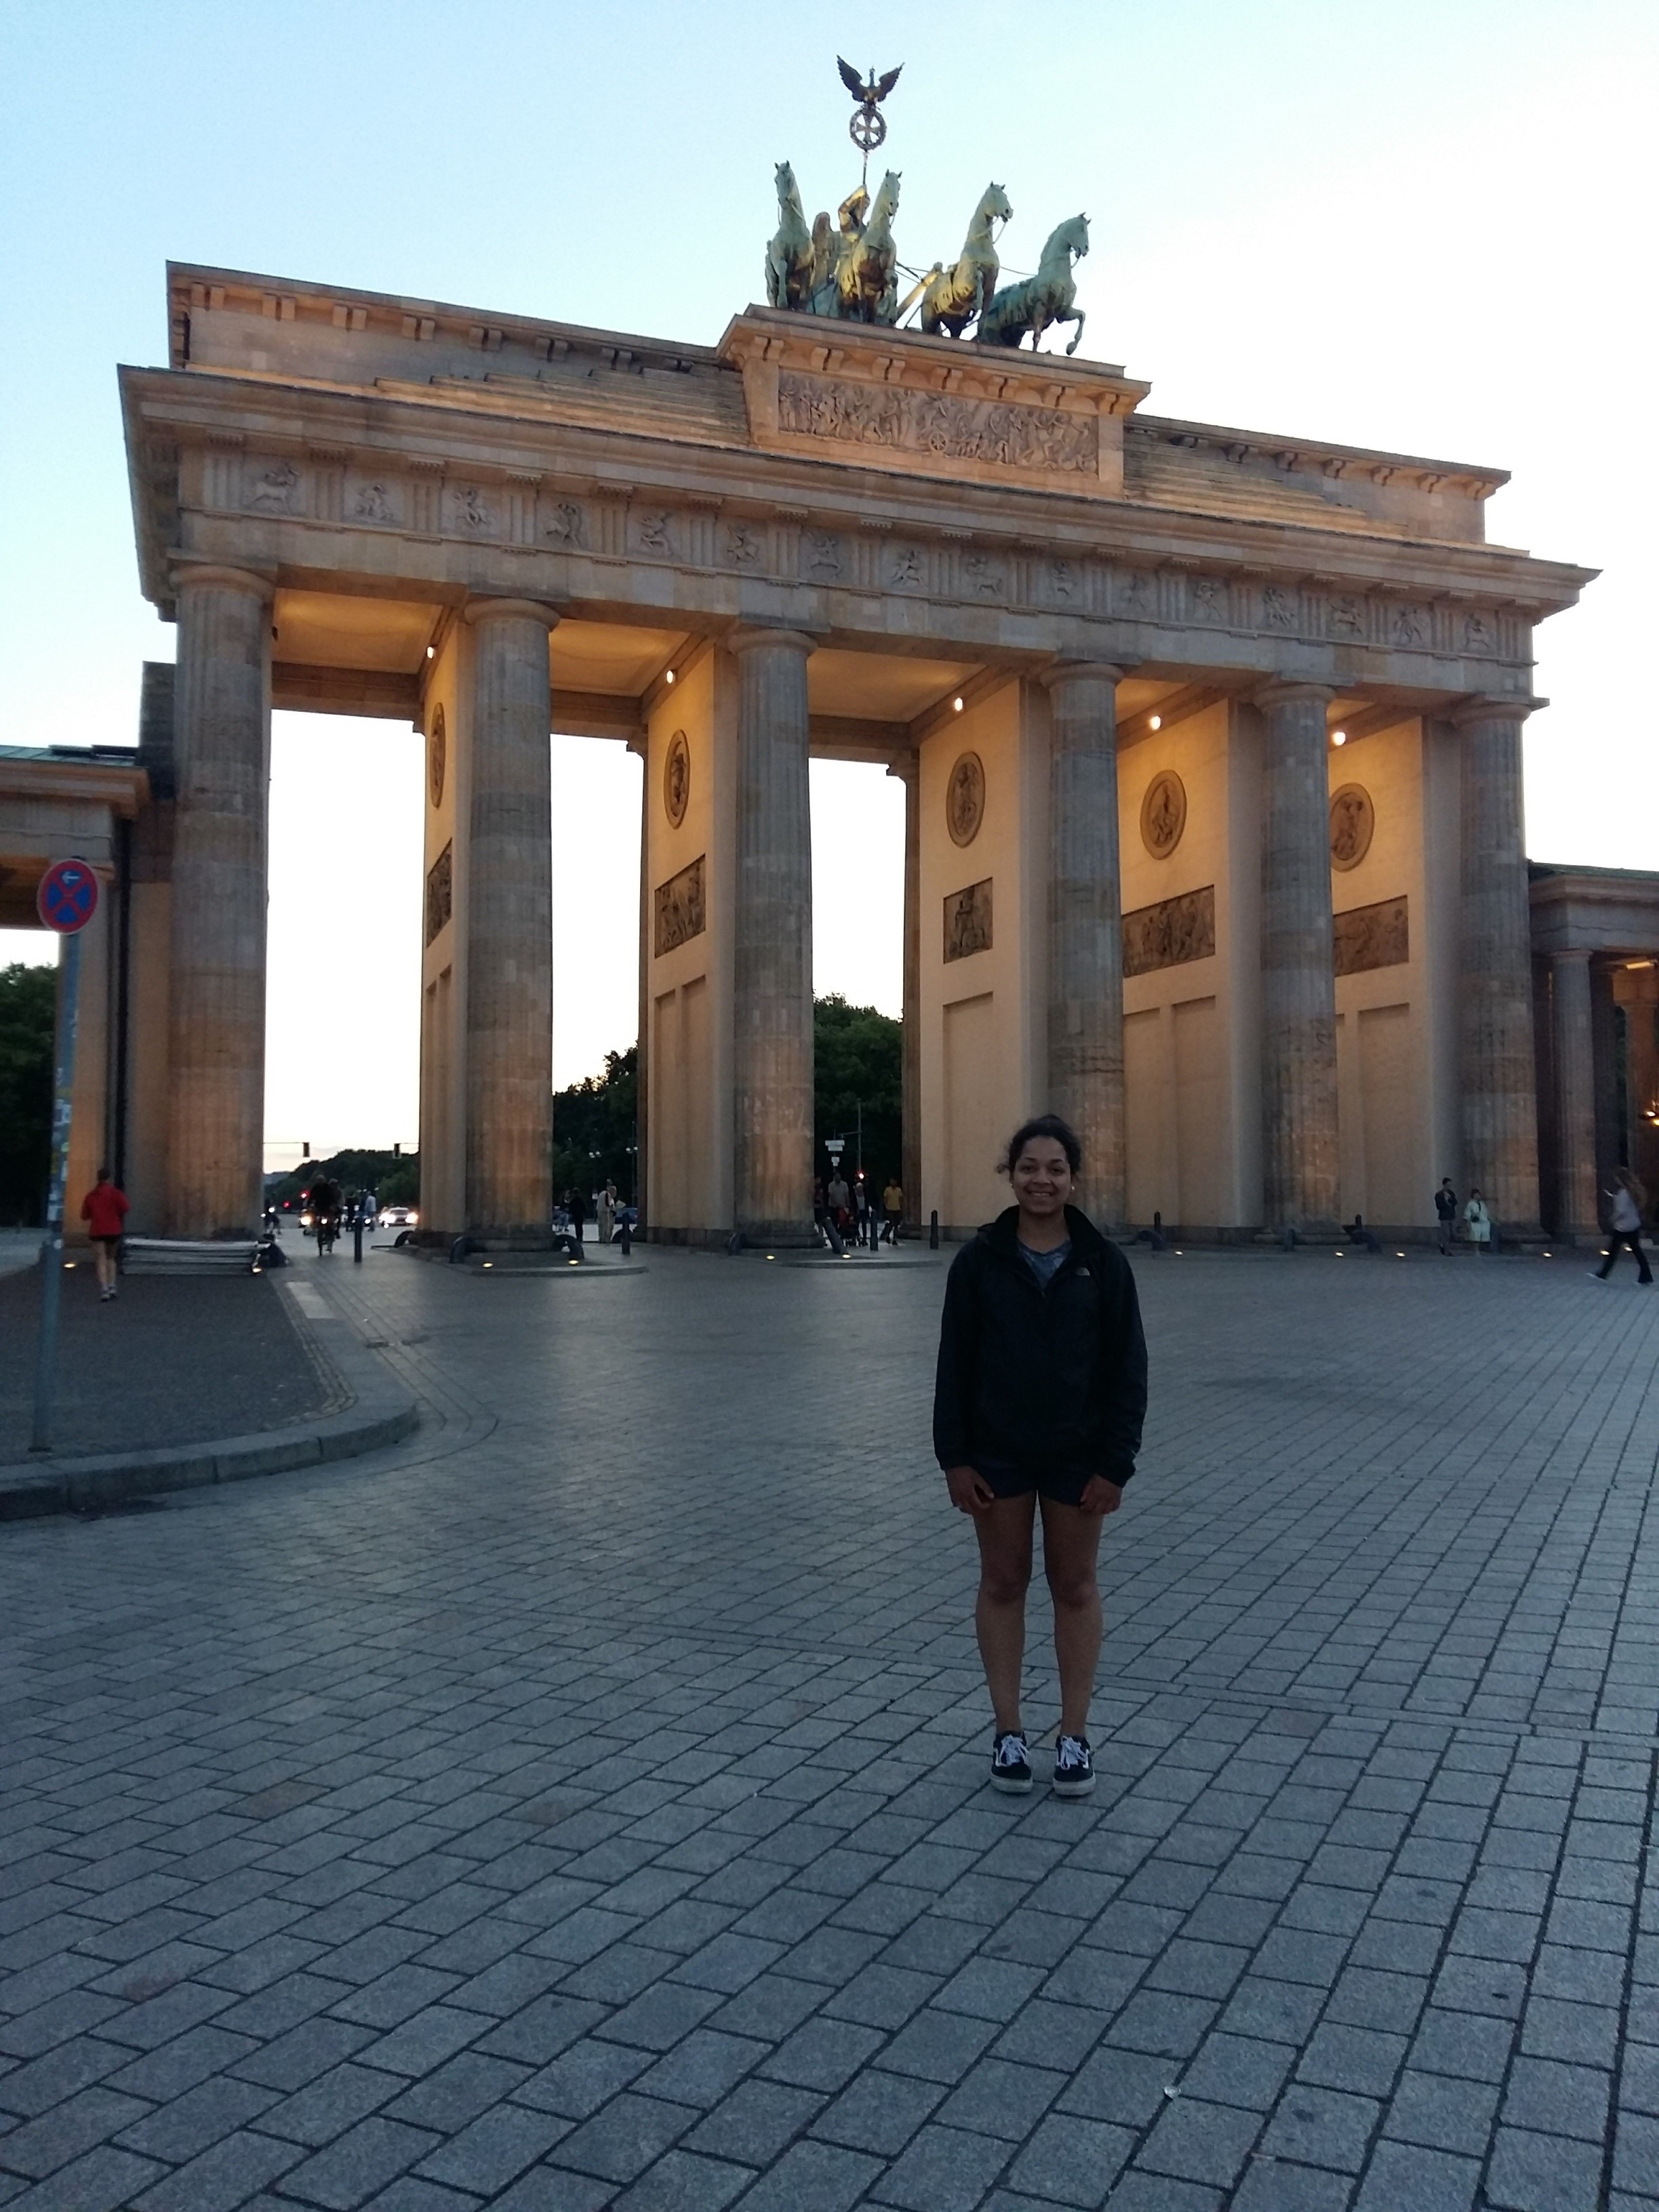 Student in front of the Brandenburg Gate in Germany